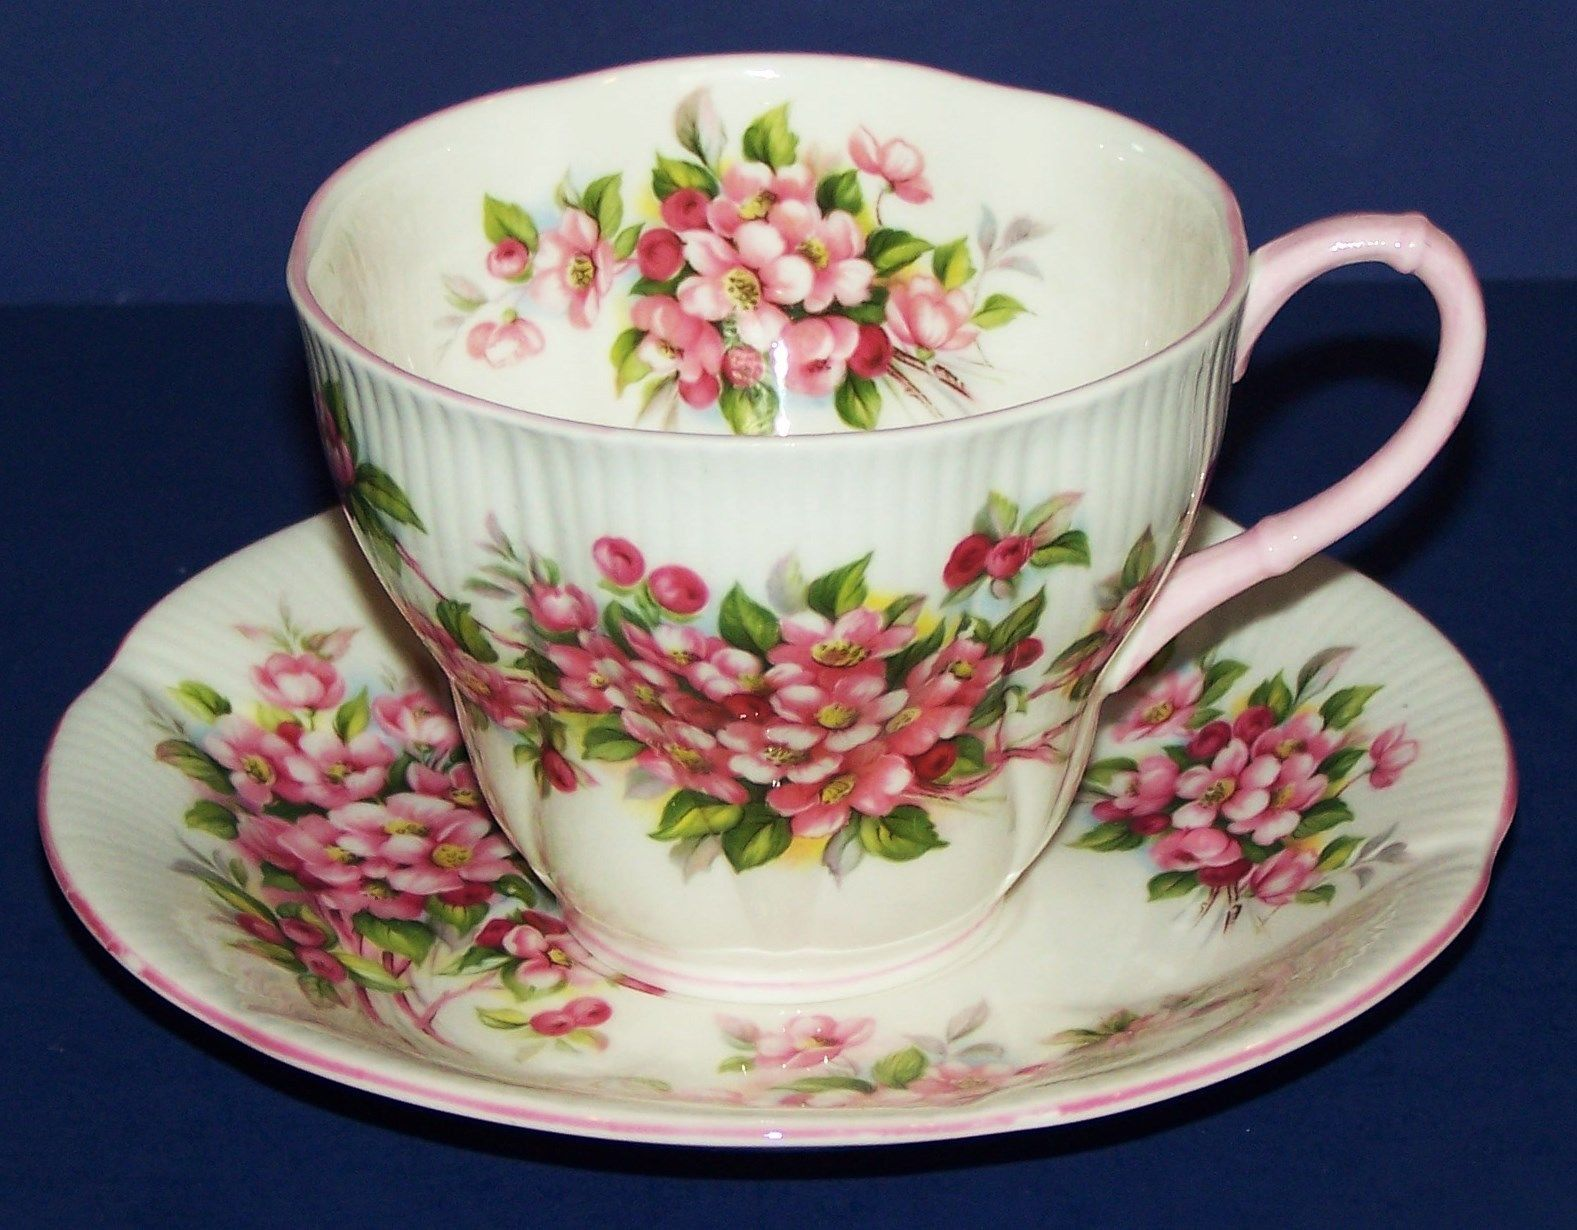 ROYAL ALBERT BLOSSOM TIME SERIES APPLE BLOSSOM TEA CUP AND SAUCER